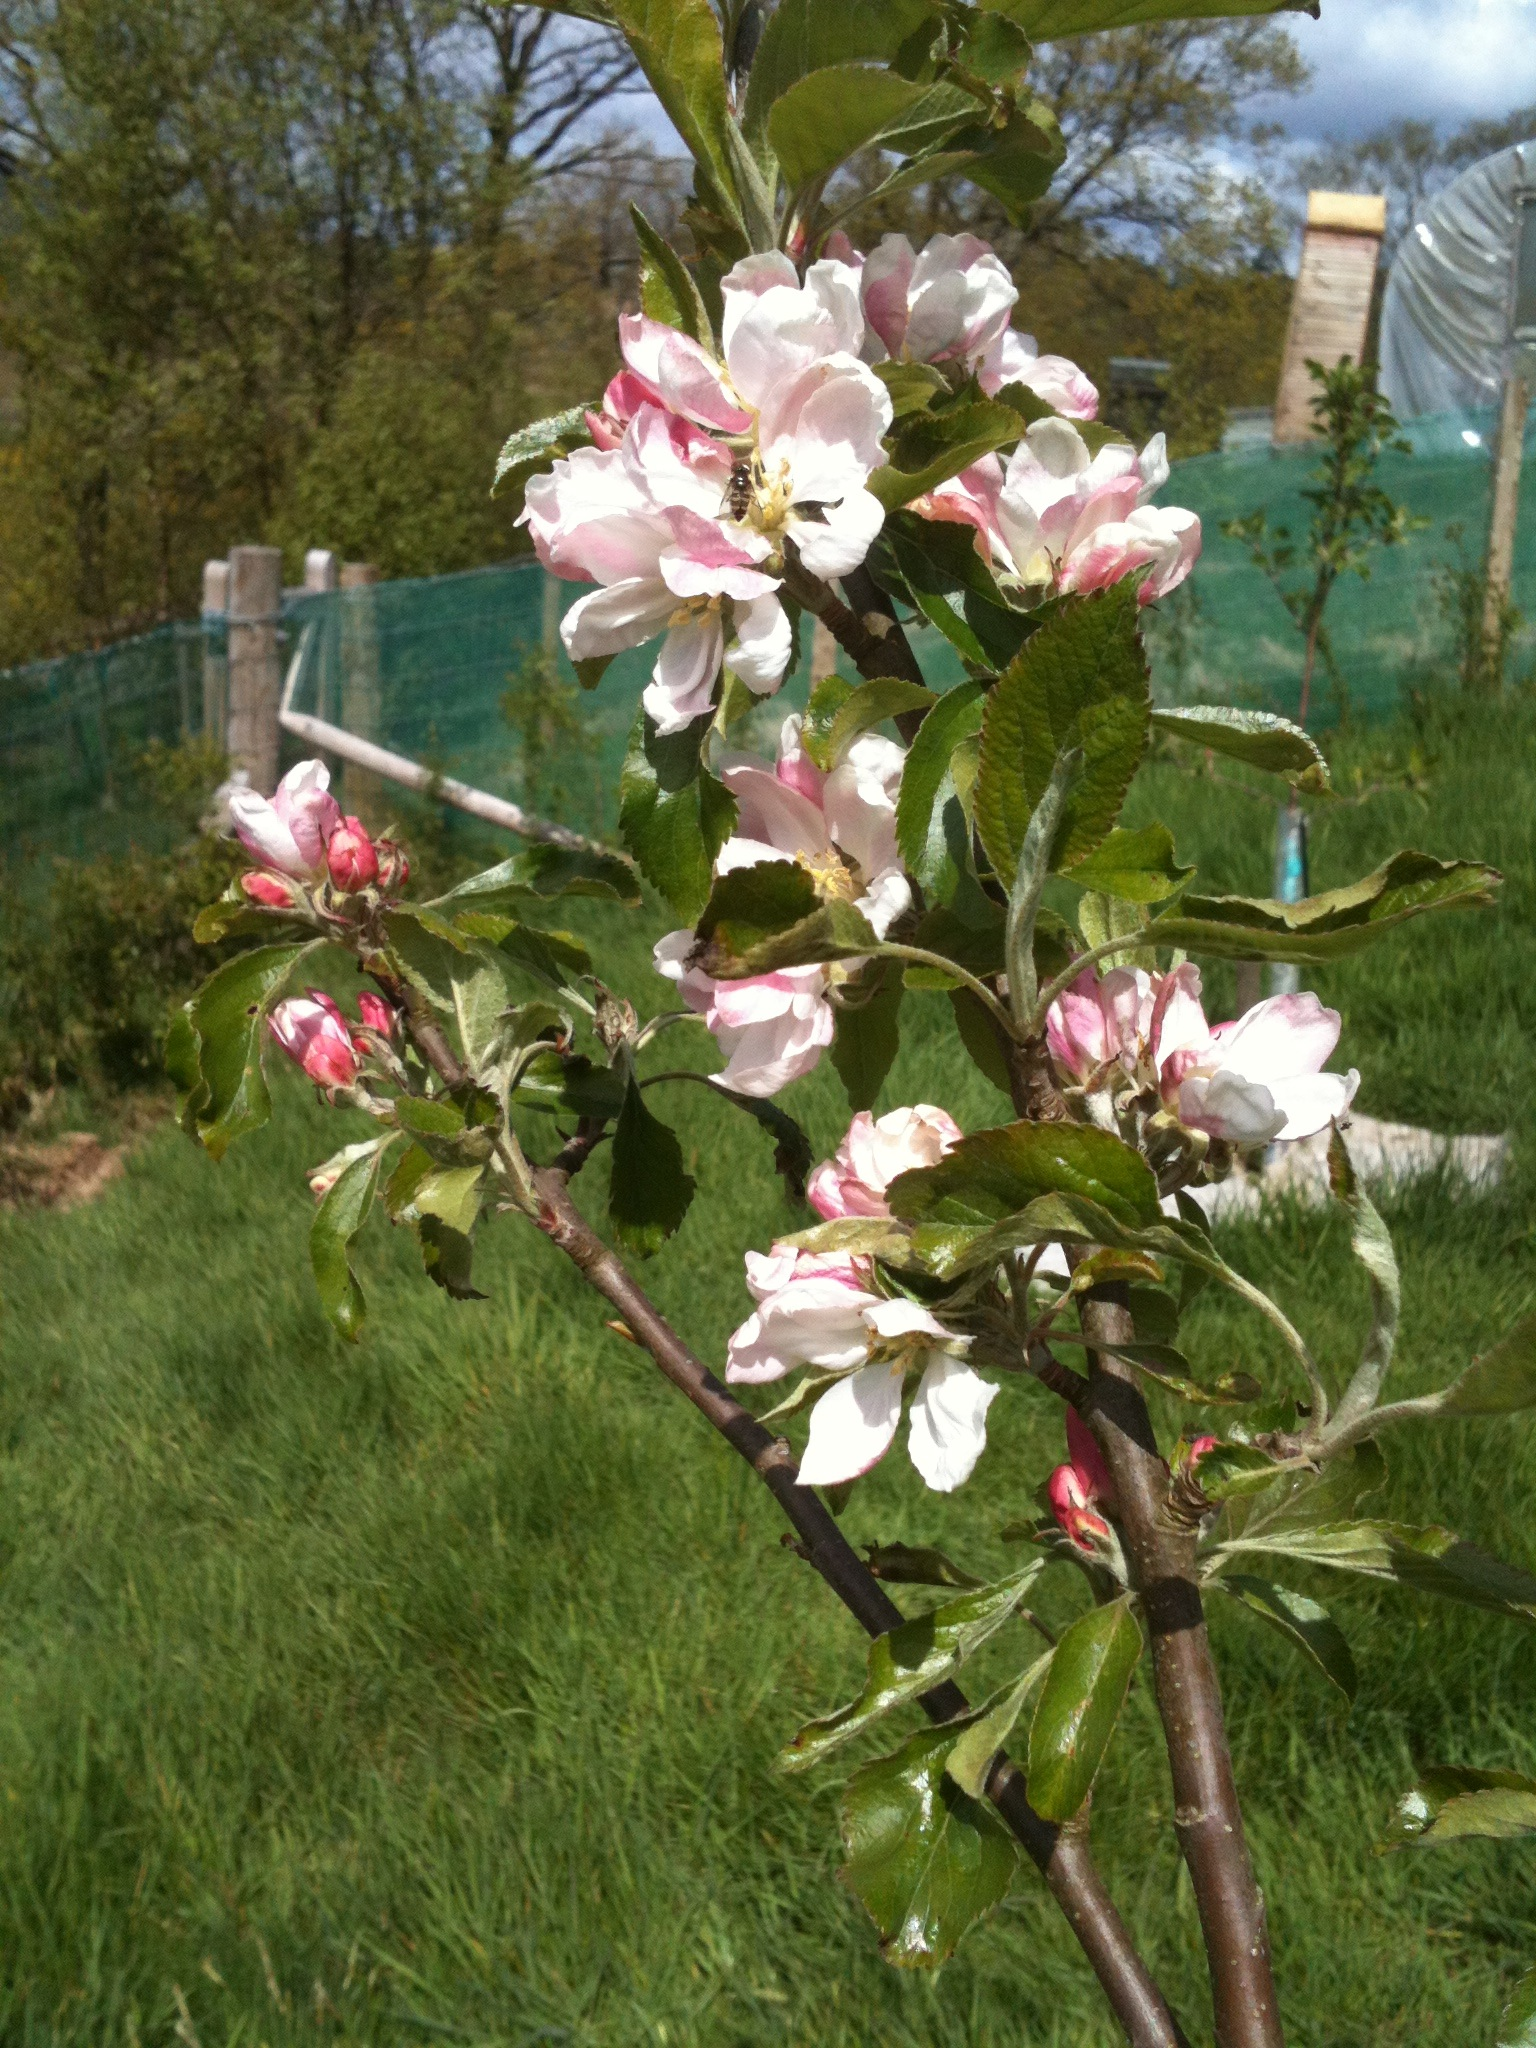 Welsh apple 'Croen Mochyn' in blossom